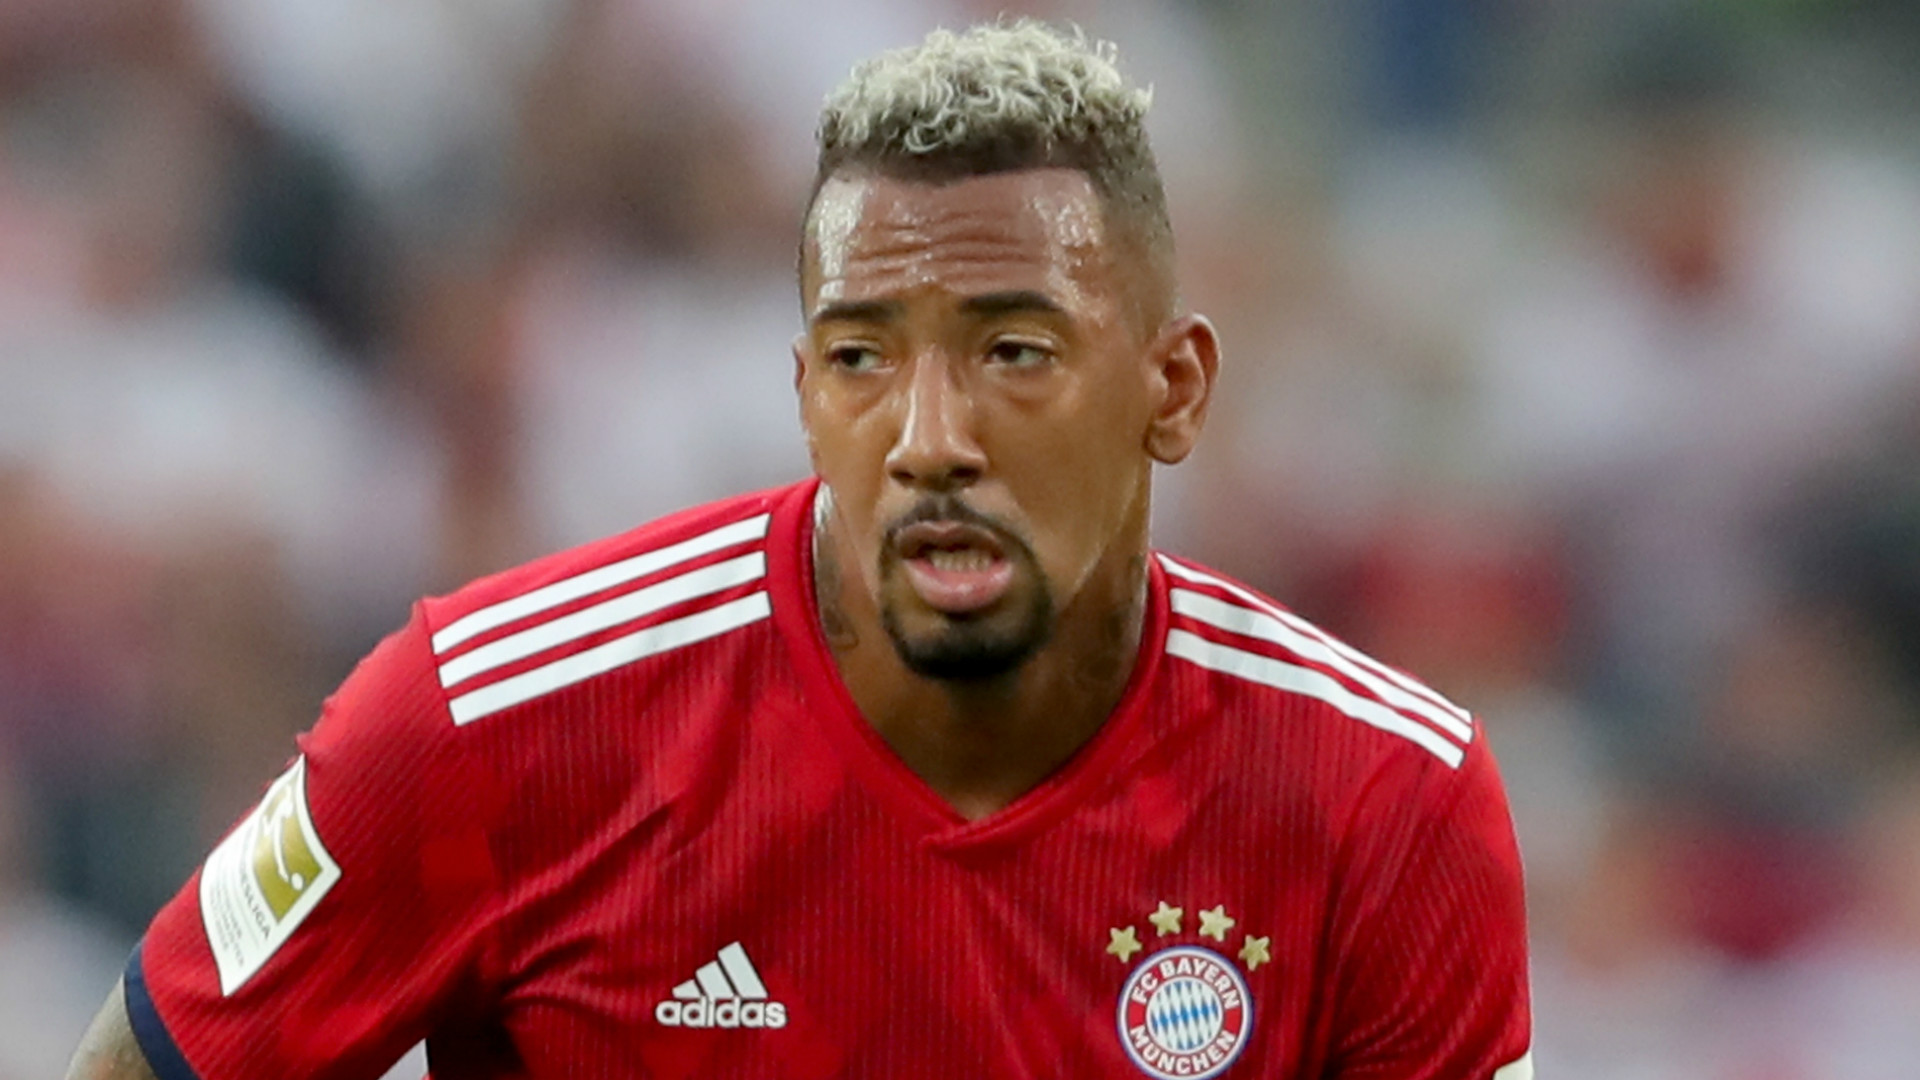 Jerome Boateng explains why he snubbed Man United